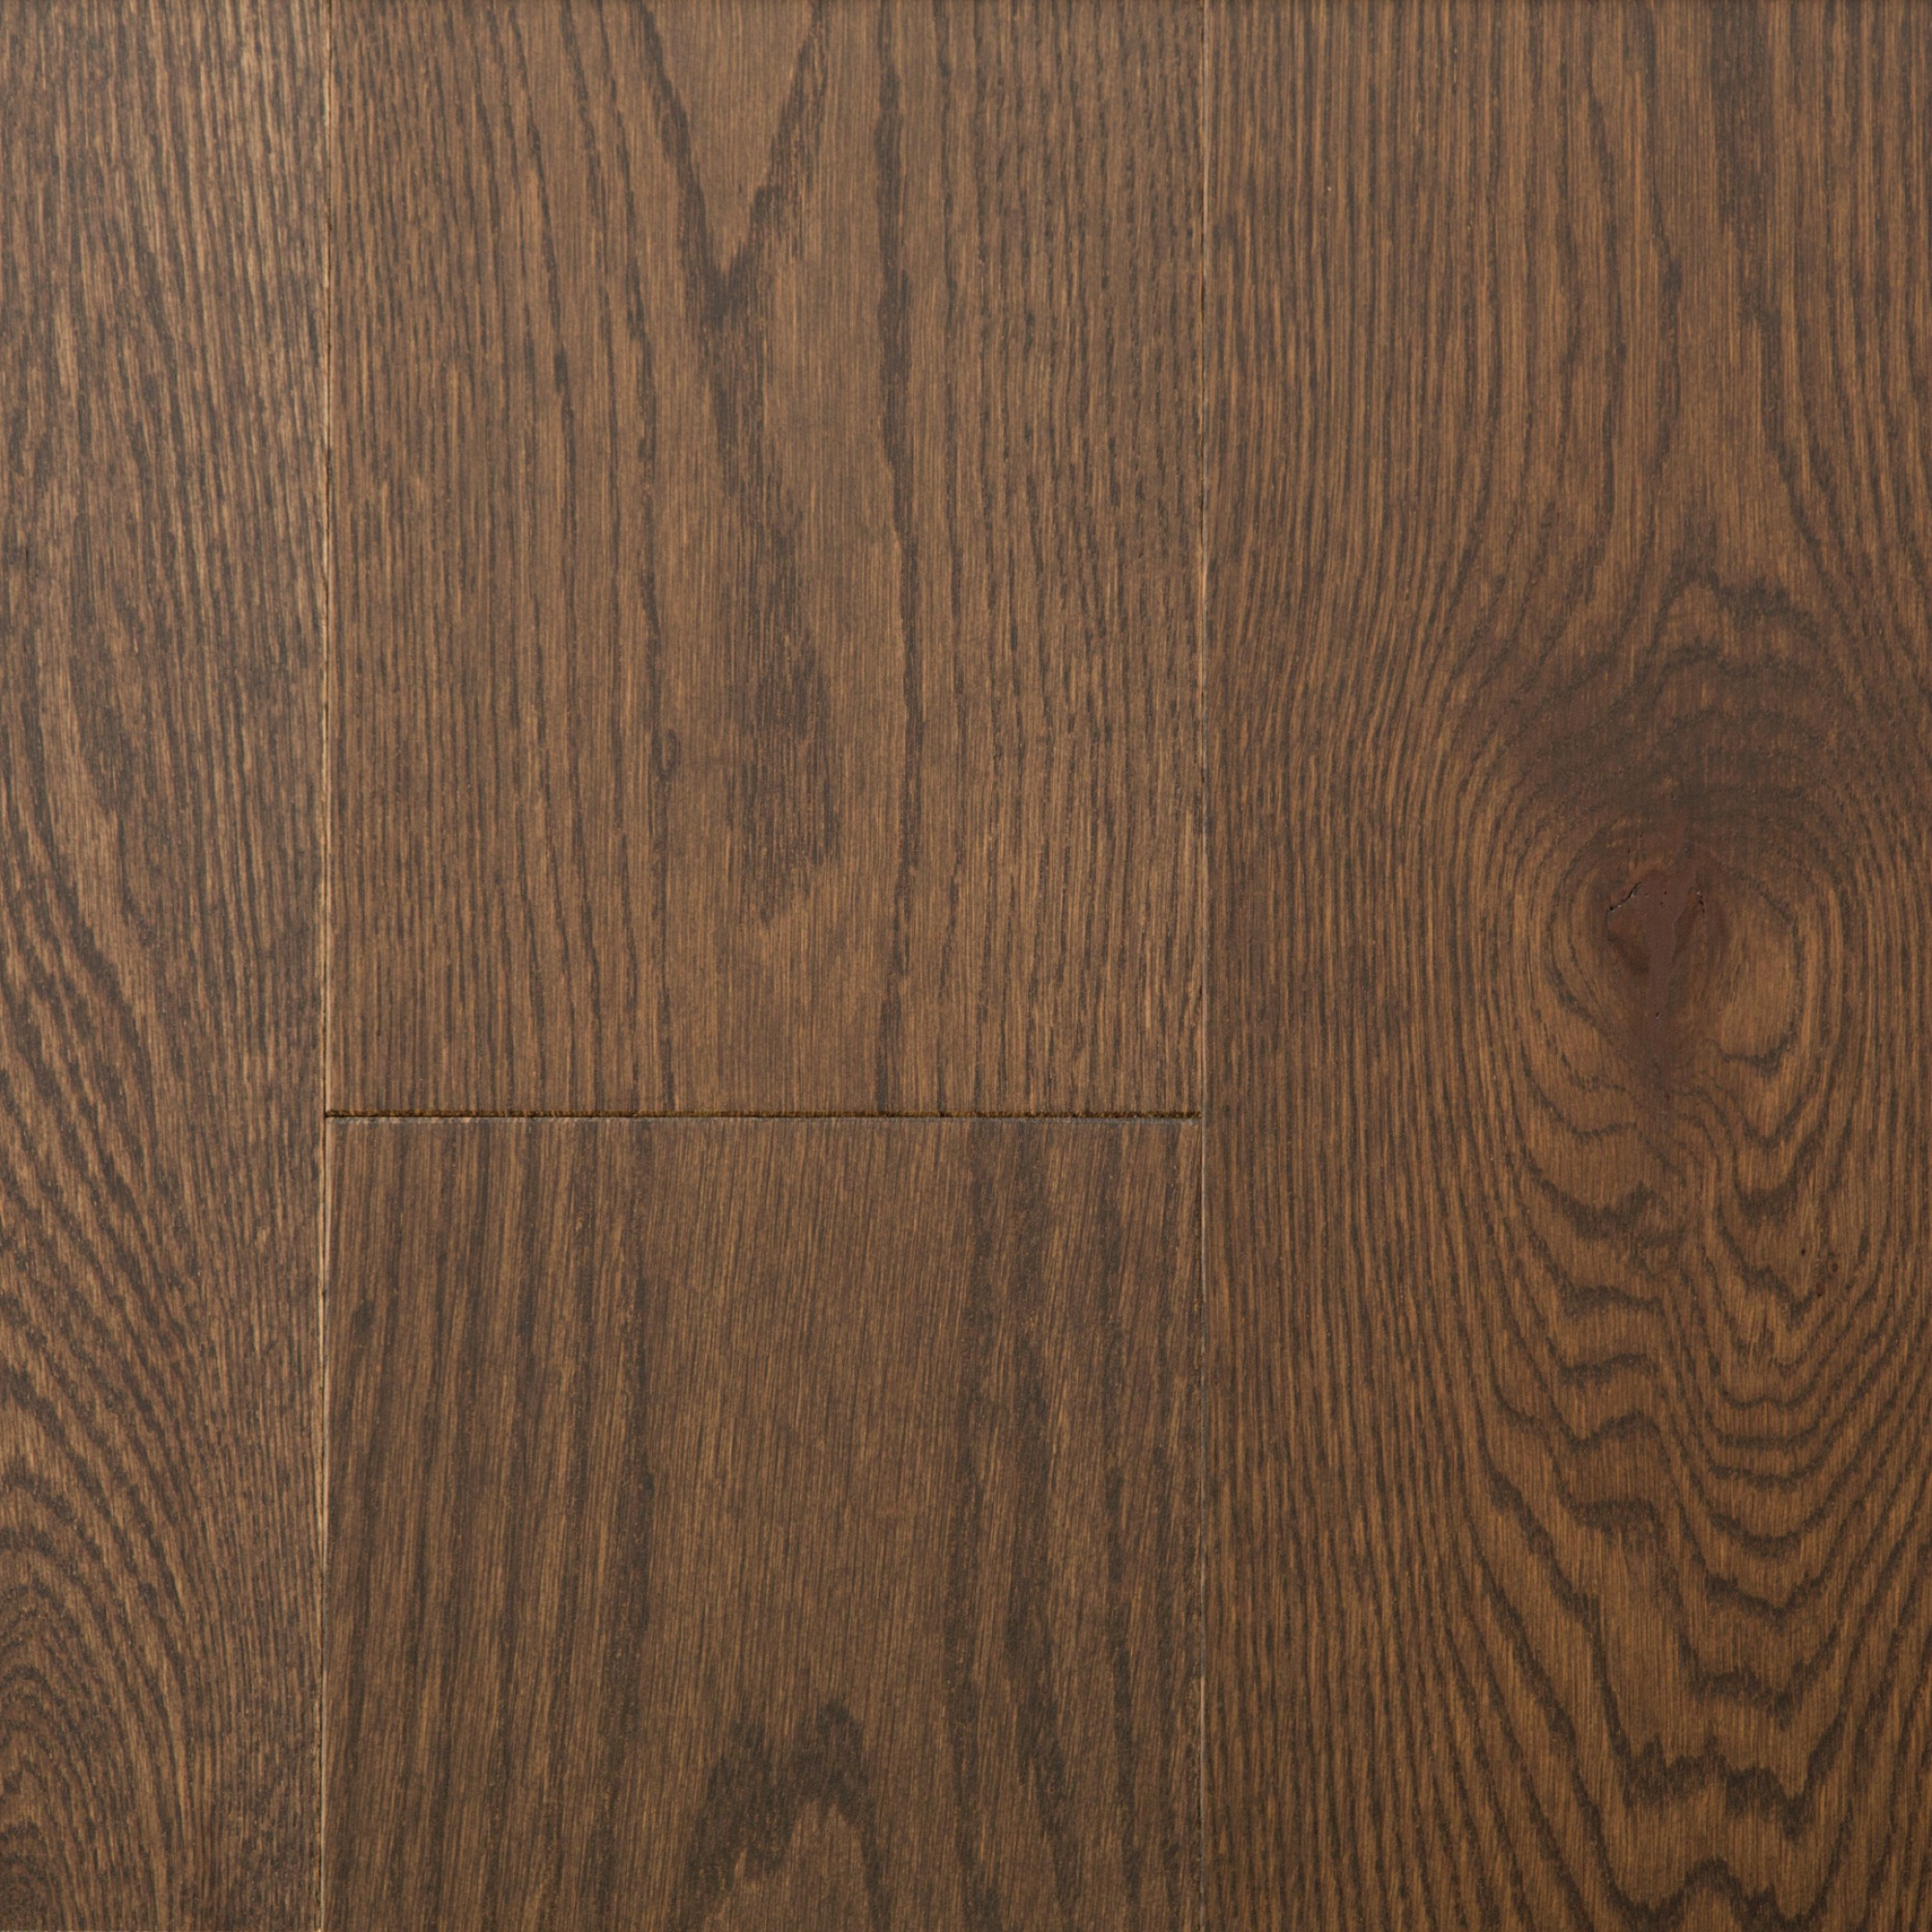 White Oak Gabon